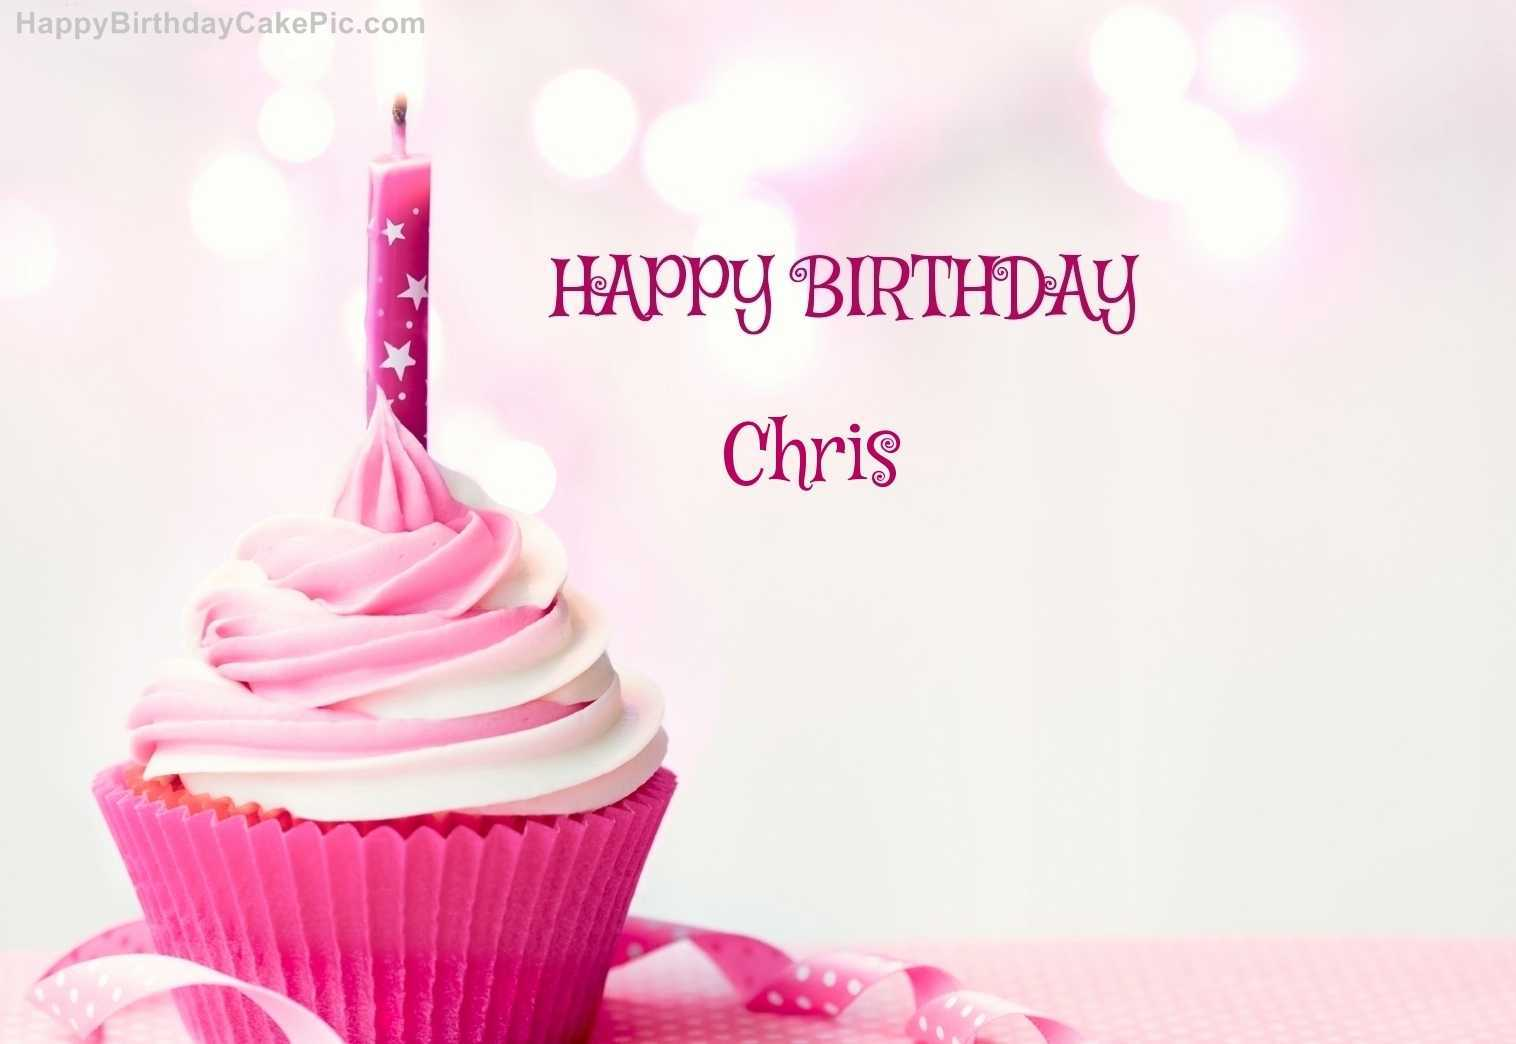 happy birthday chris ; happy-birthday-christopher-images-beautiful-happy-birthday-cupcake-candle-pink-cake-for-chris-of-happy-birthday-christopher-images